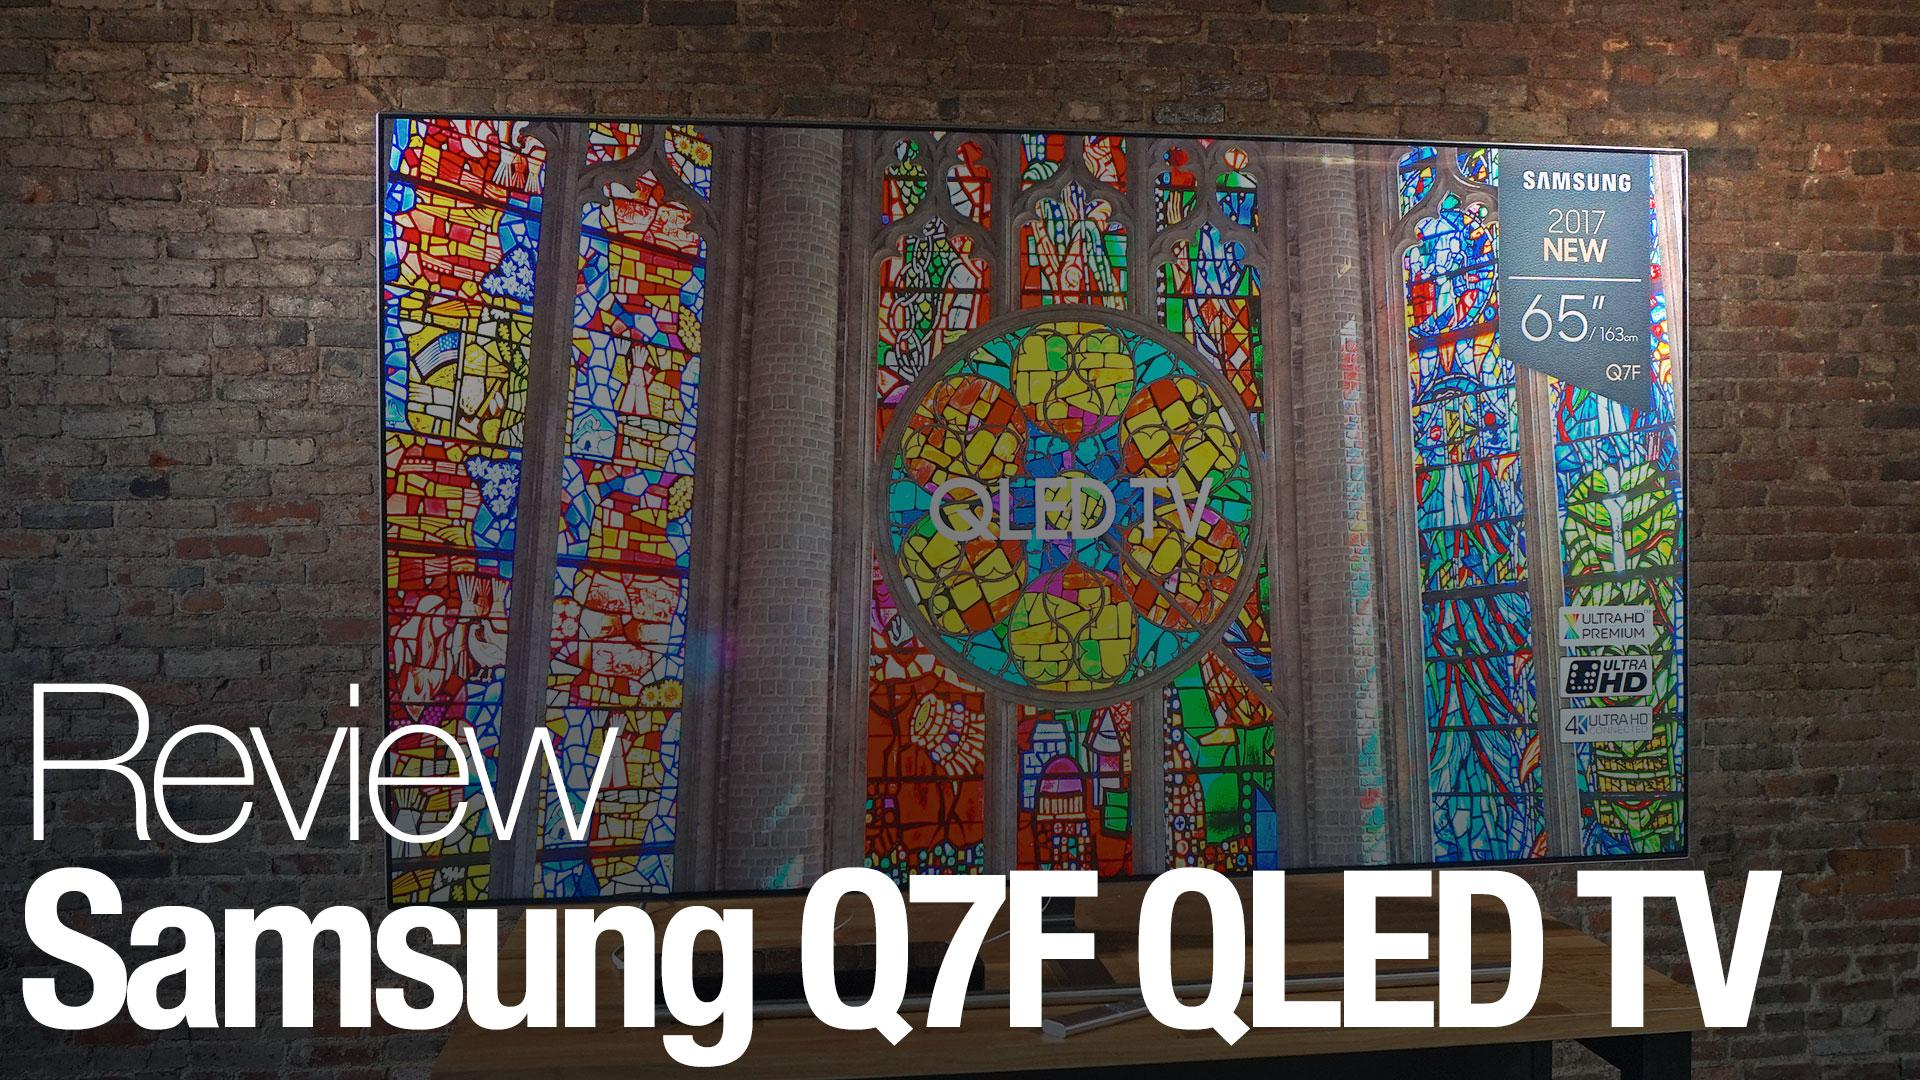 Samsung Q7F Series TV Review - Reviewed Televisions